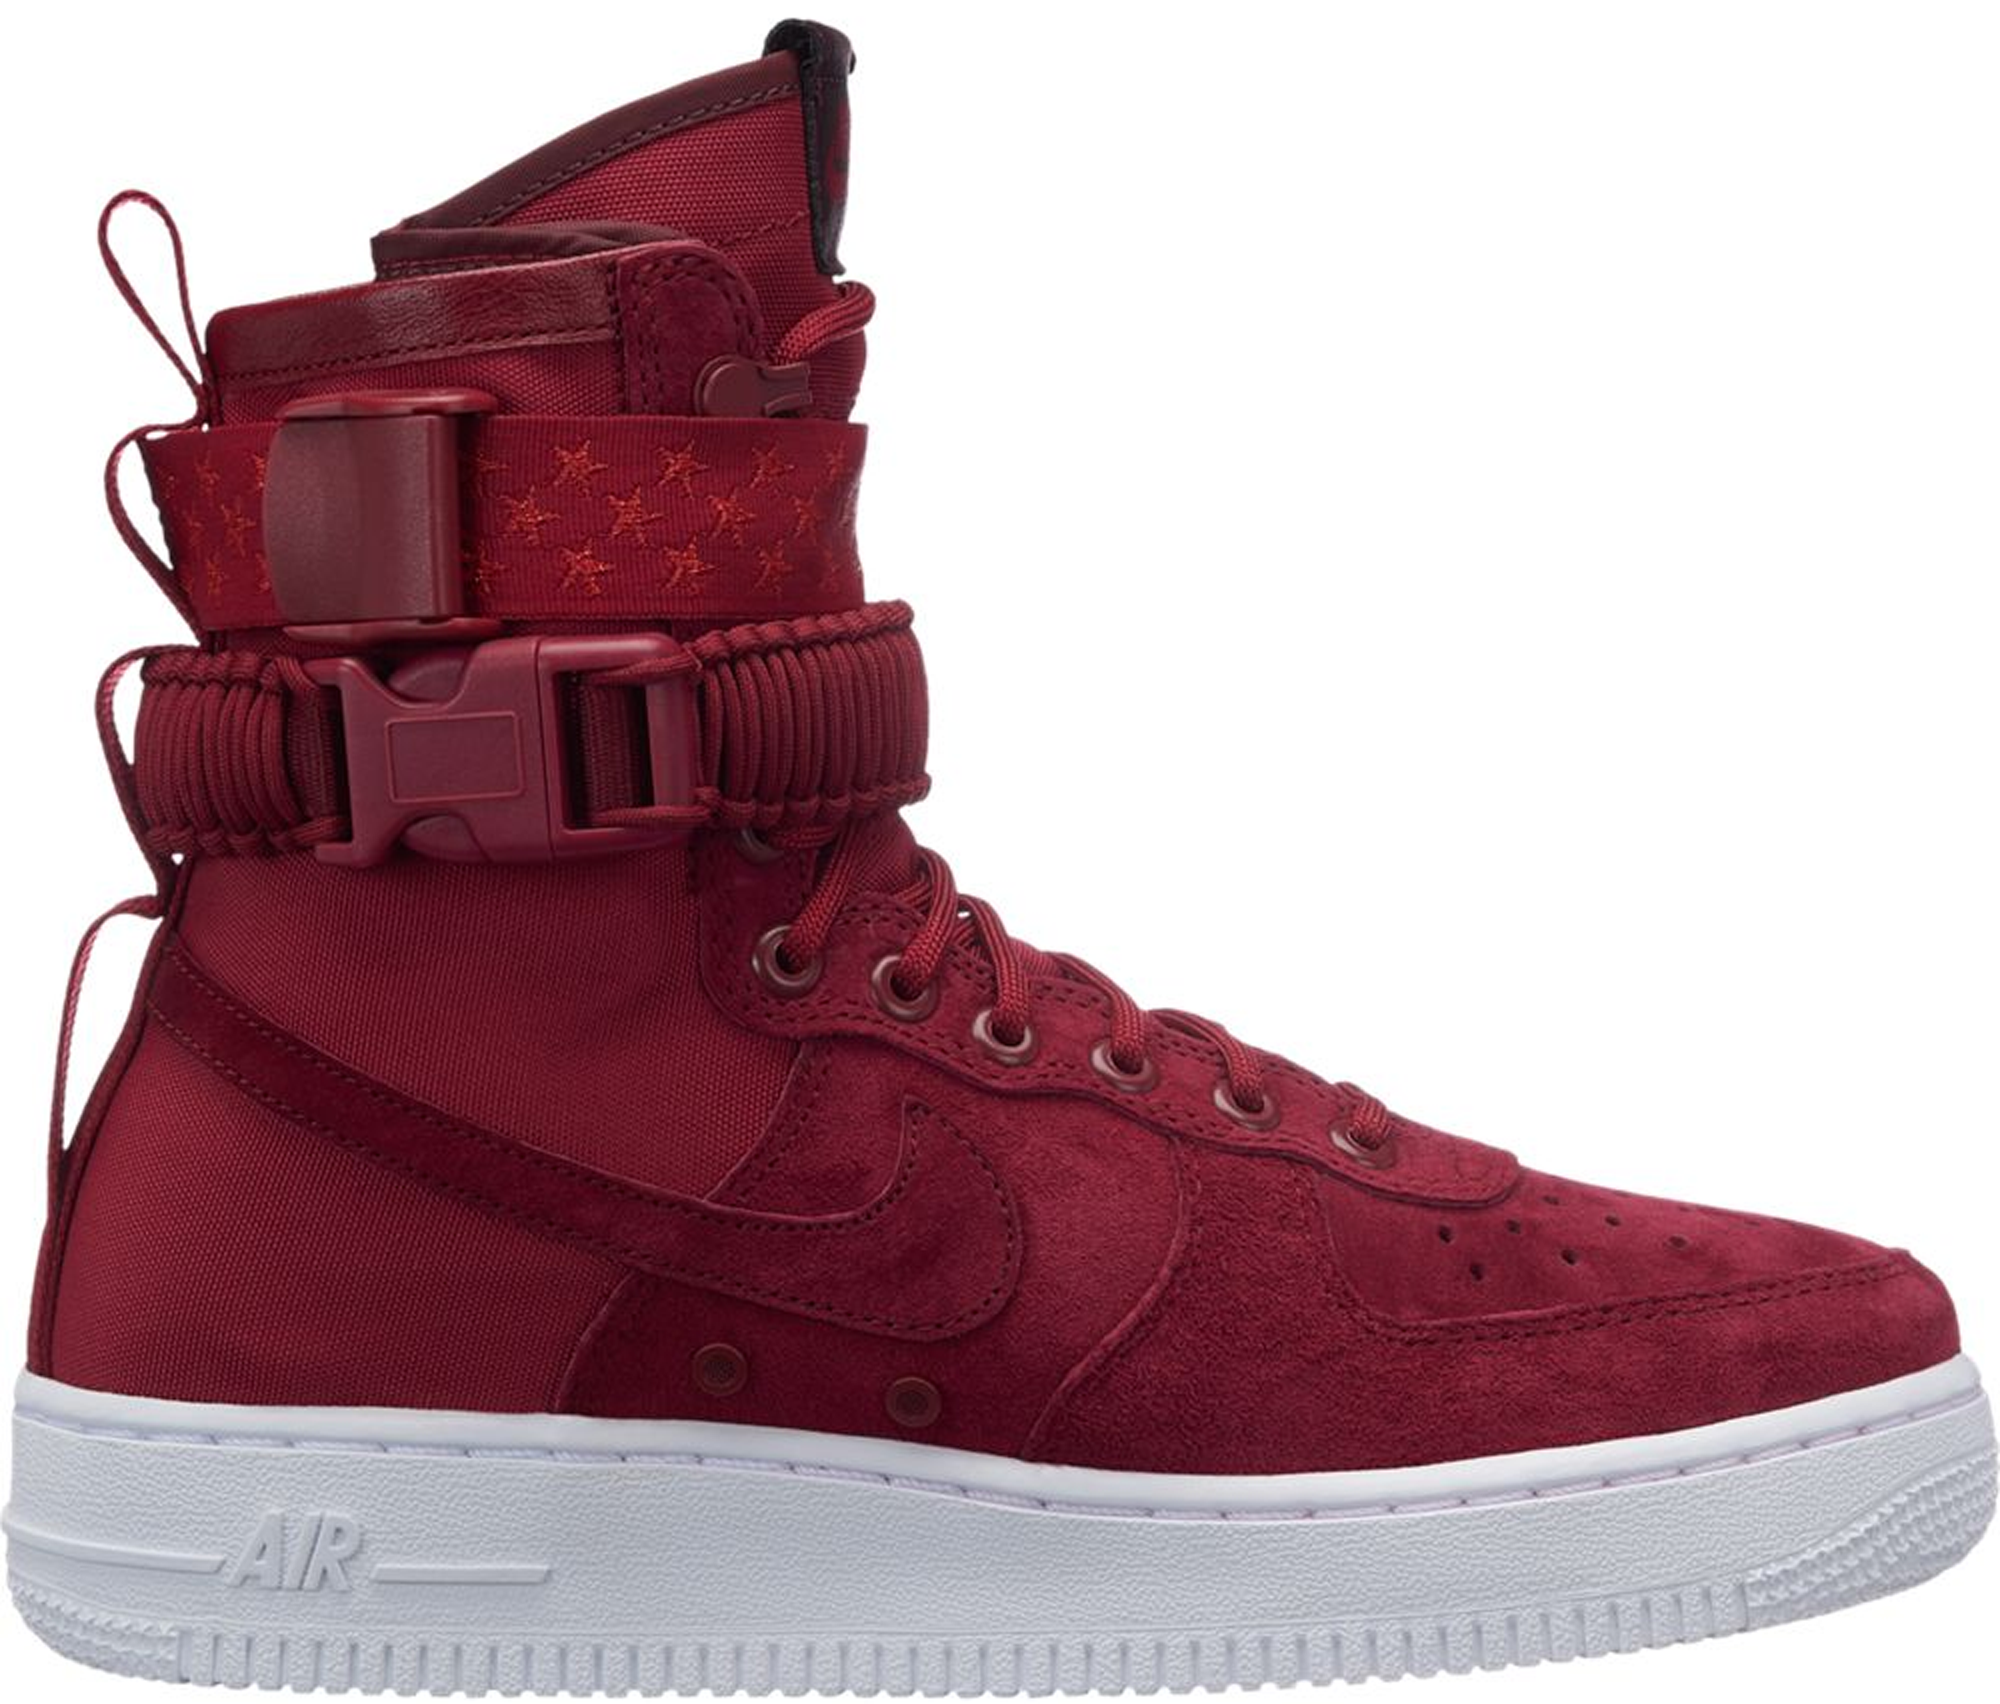 Sf Air Force 1 High Red Crush (W) by Stock X